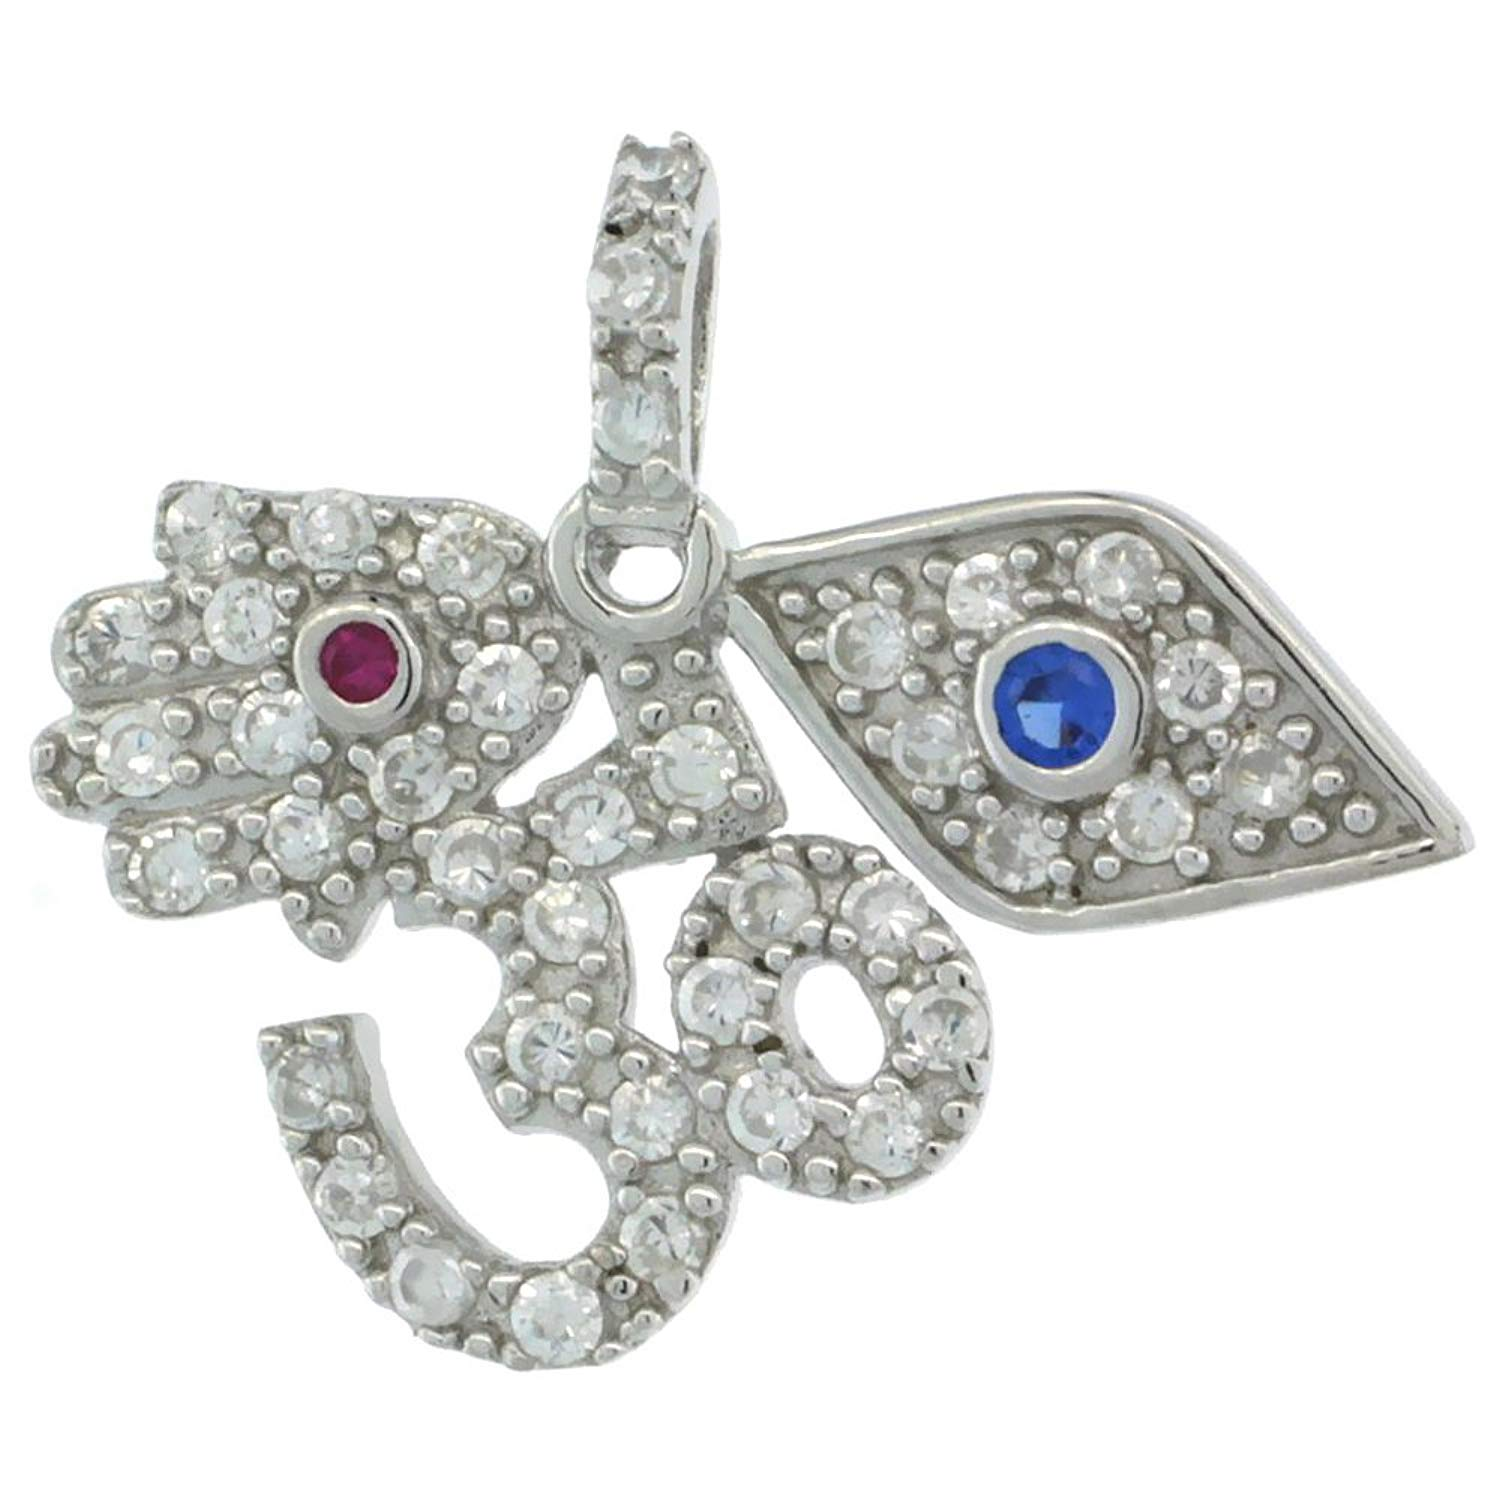 Sterling Silver OM Aum, Hamsa, Evil Eye Pendant w/ Cubic Zirconia Stones, 15/16 in. (24mm) wide